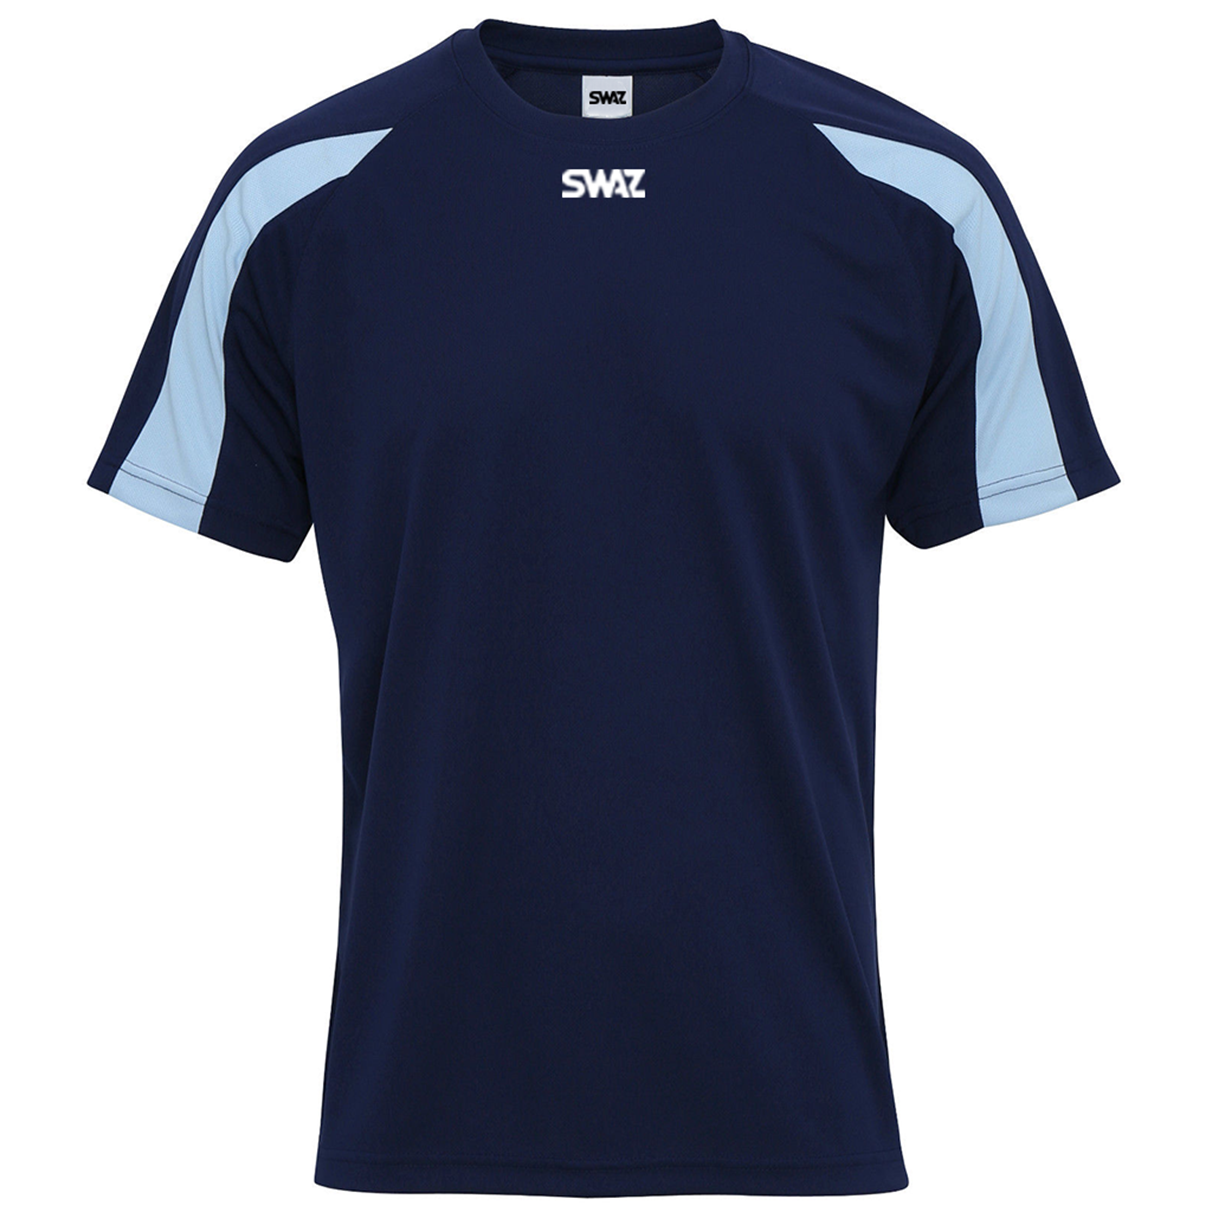 SWAZ Premier Training T-Shirt – Navy/Sky